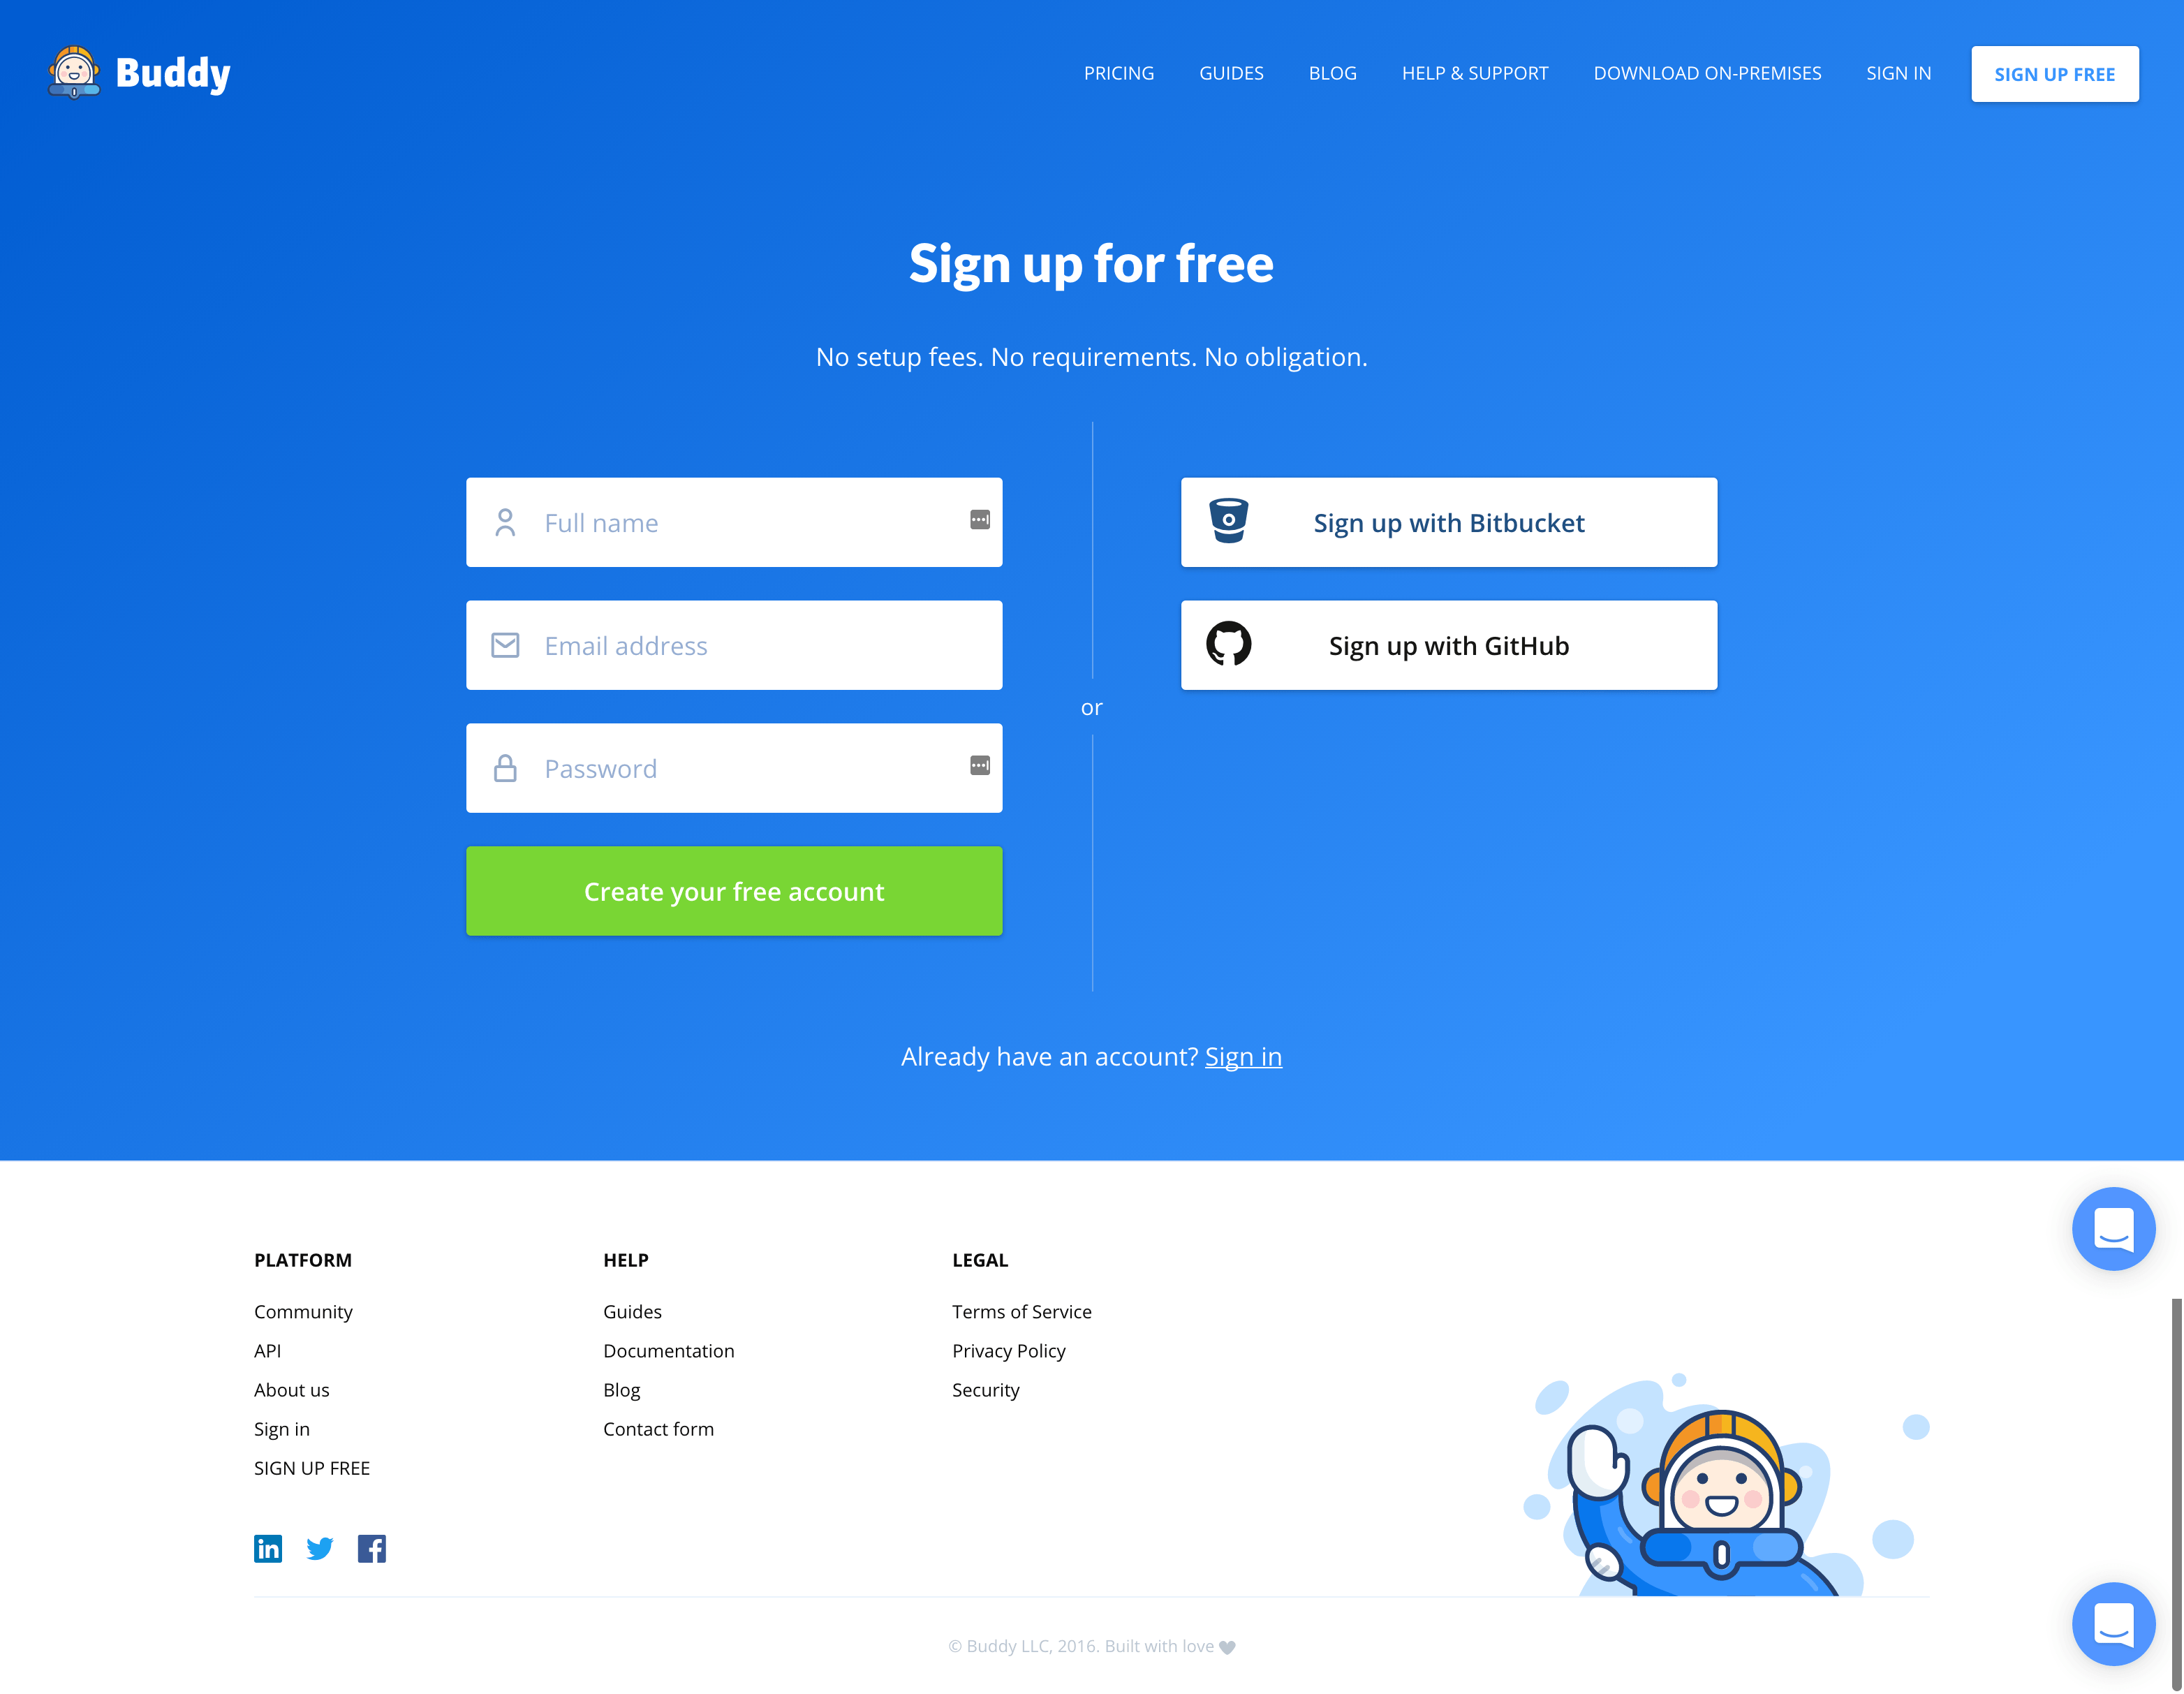 Buddy page sign up